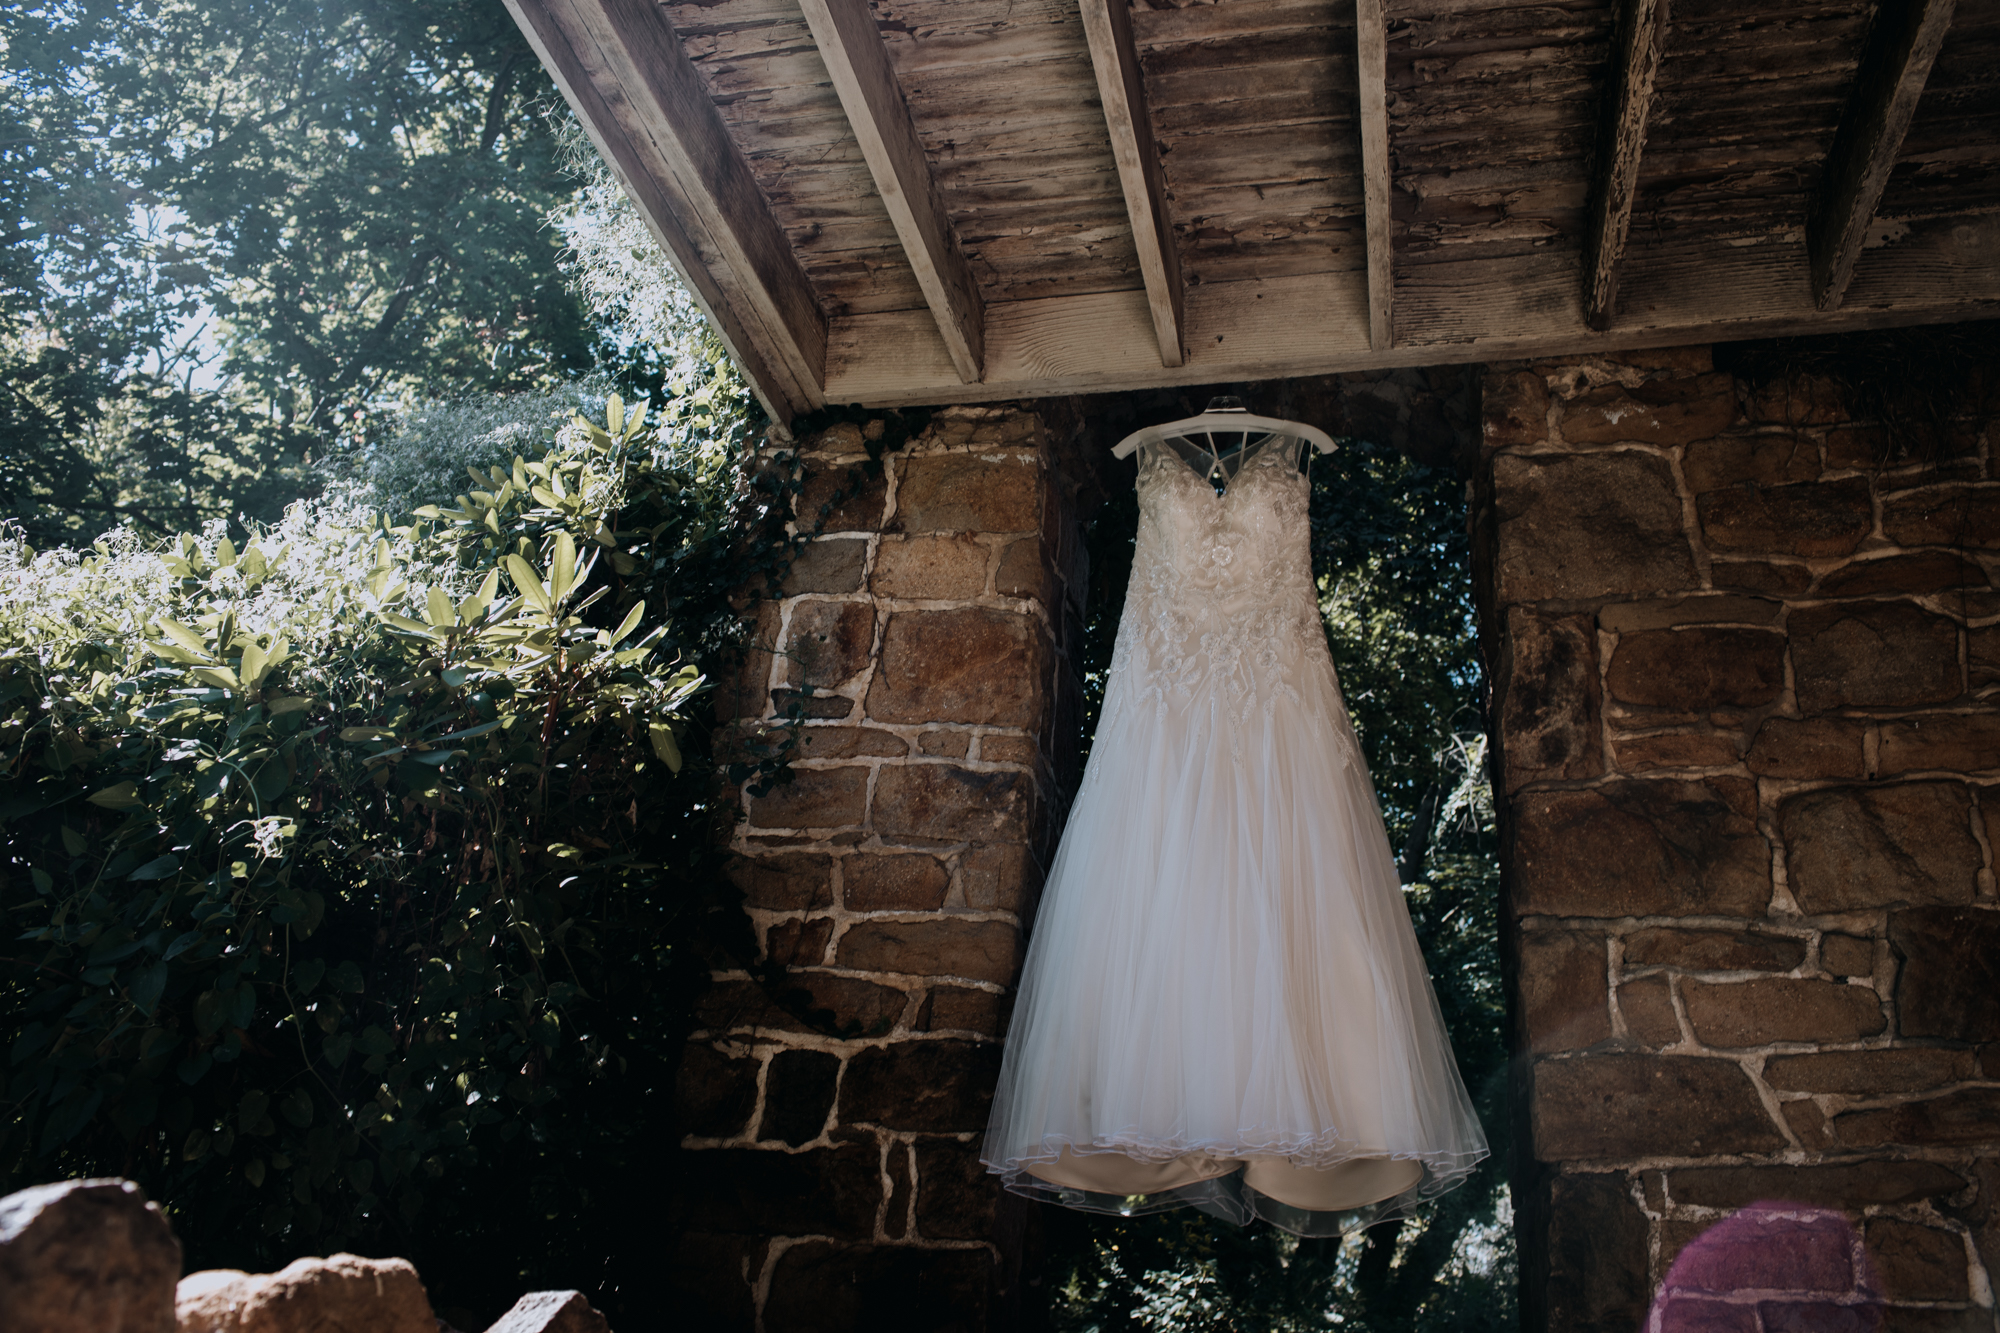 Cambria_Creative_Photographer_Boho_Wedding_Historic_Shady_Lane-4161.jpg